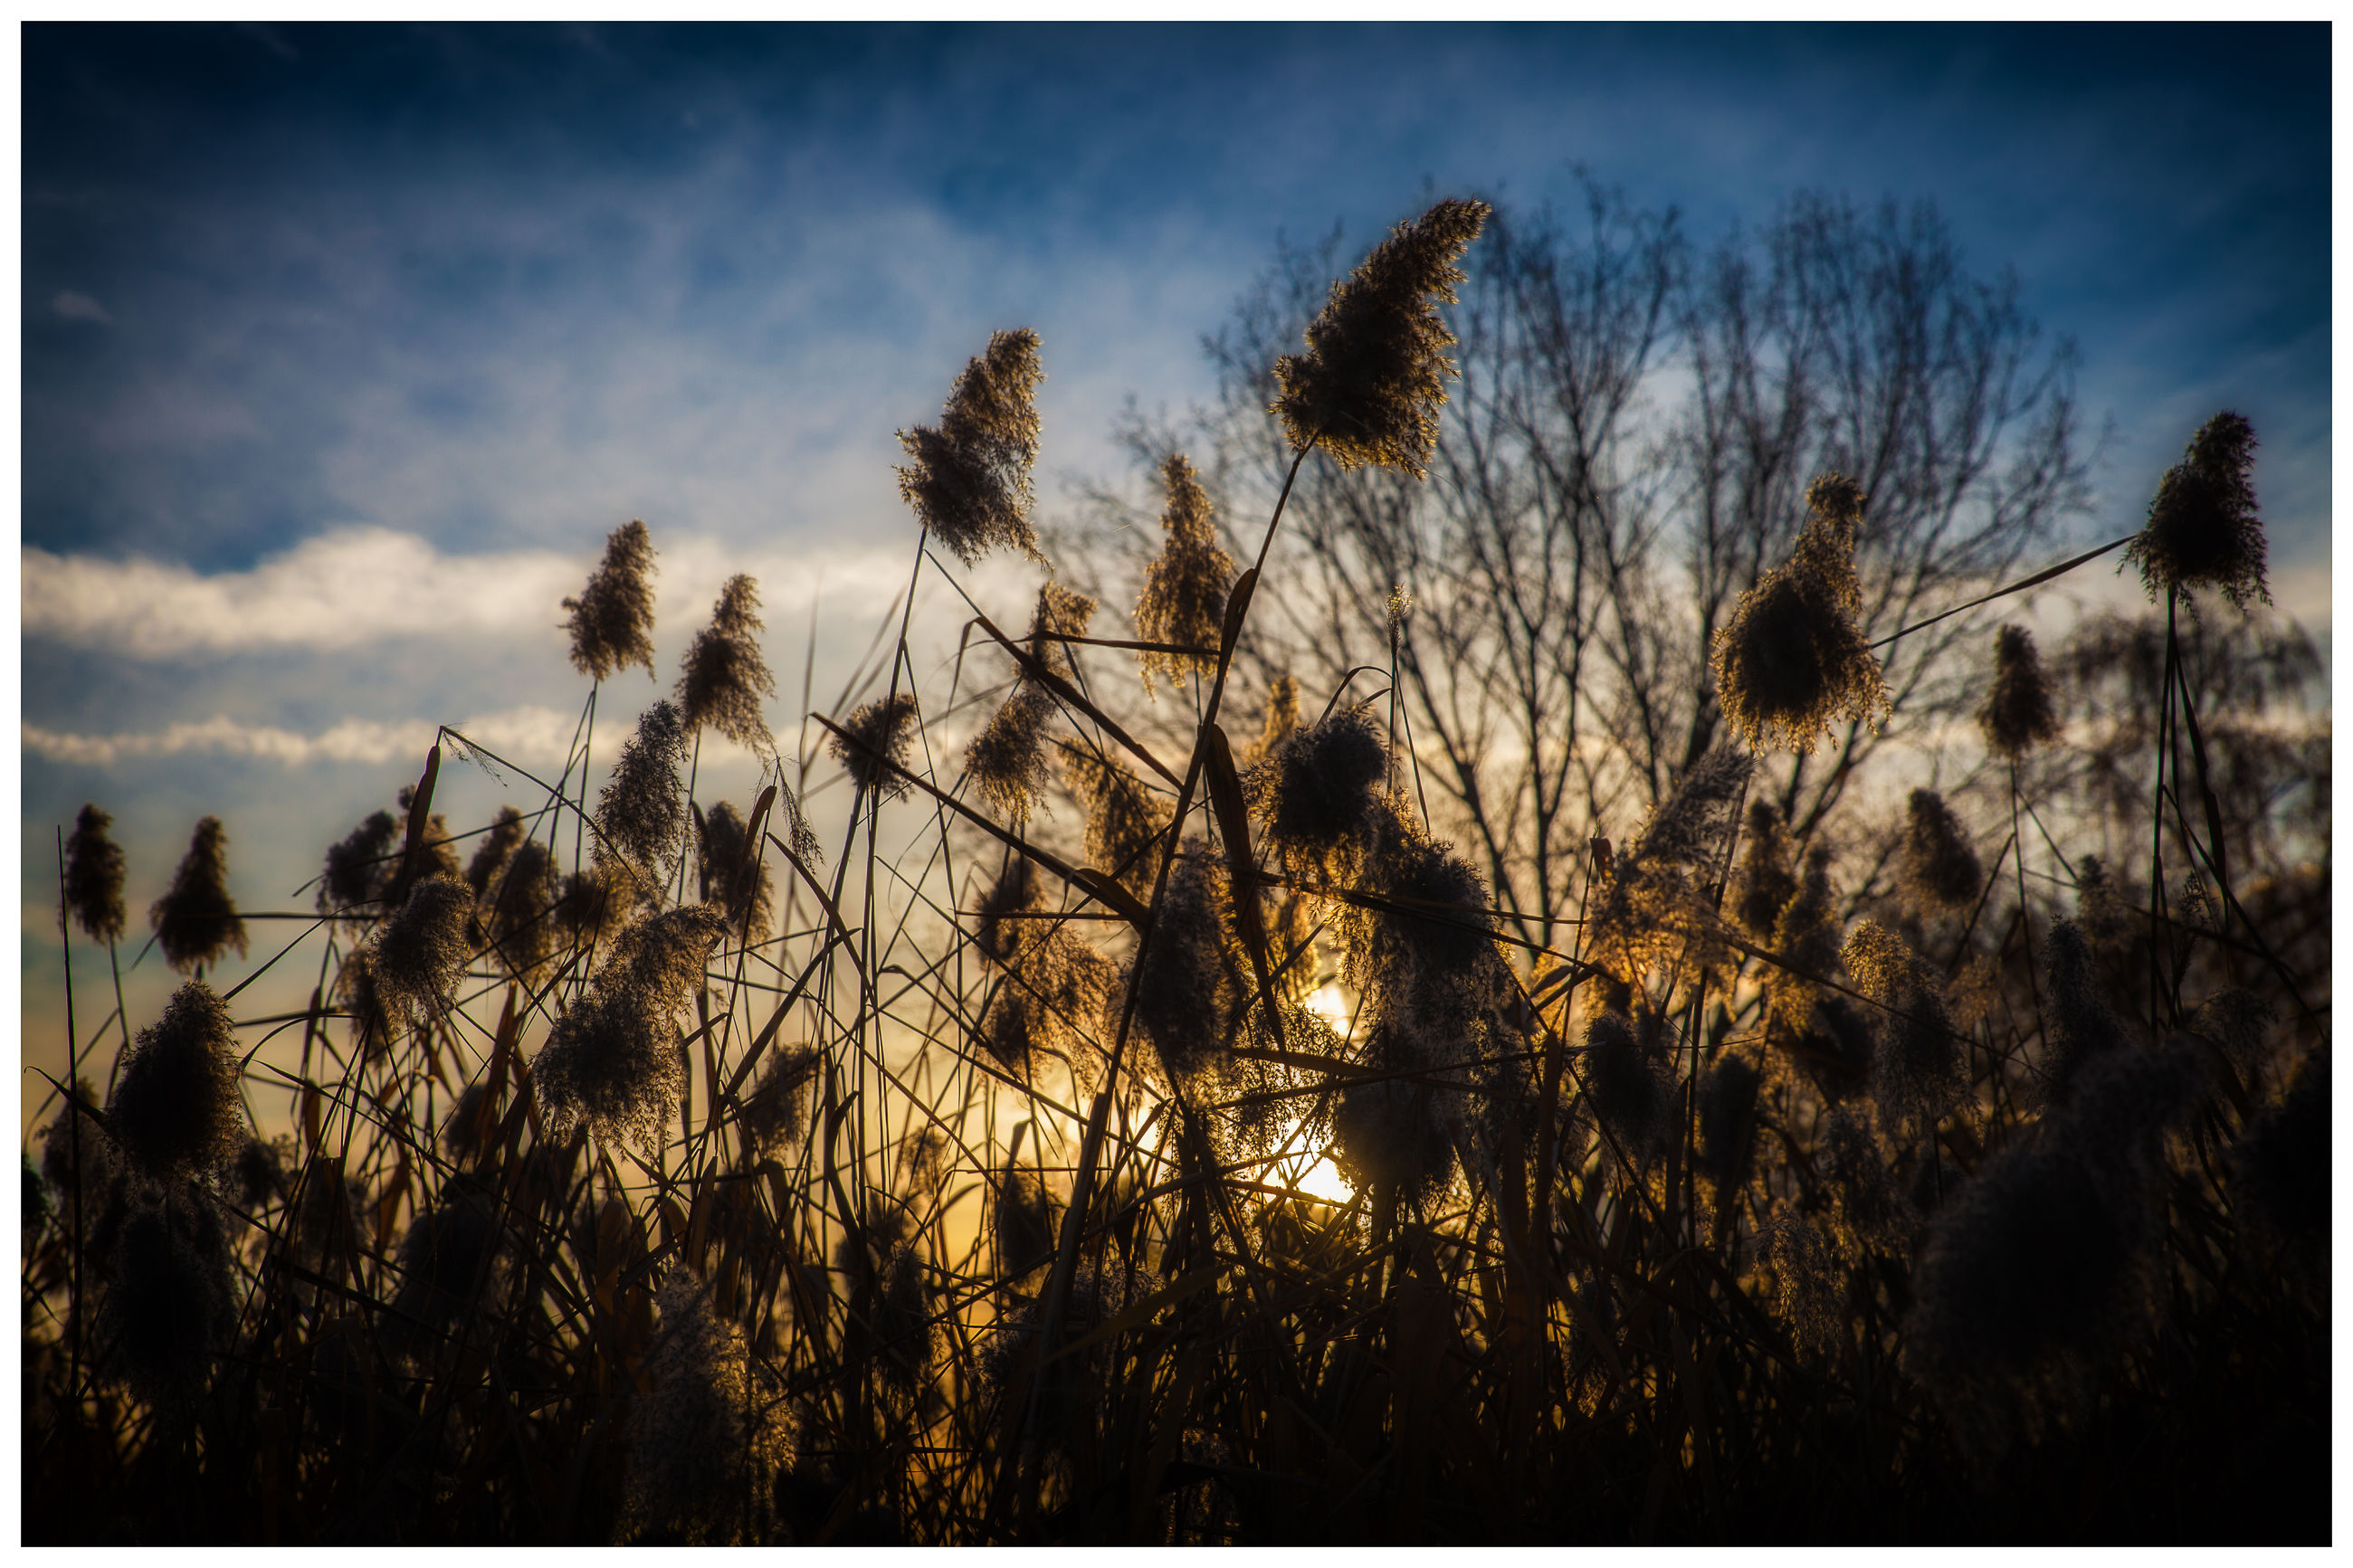 nature, sky, growth, sunset, silhouette, tranquil scene, no people, tranquility, outdoors, tree, beauty in nature, plant, scenics, sun, timothy grass, day